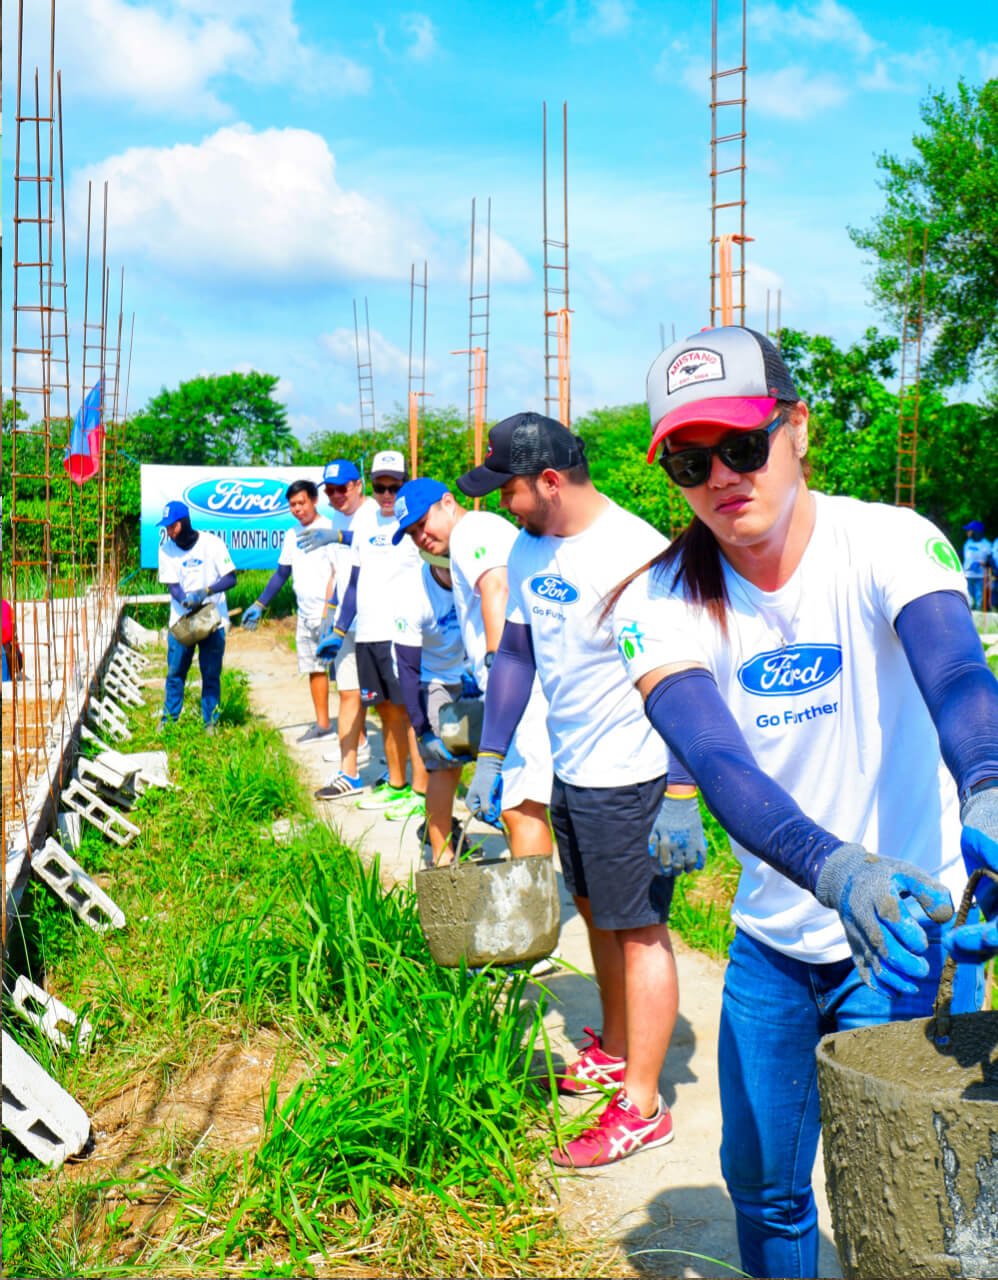 FORD GLOBAL CARING MONTH IN SEPTEMBER